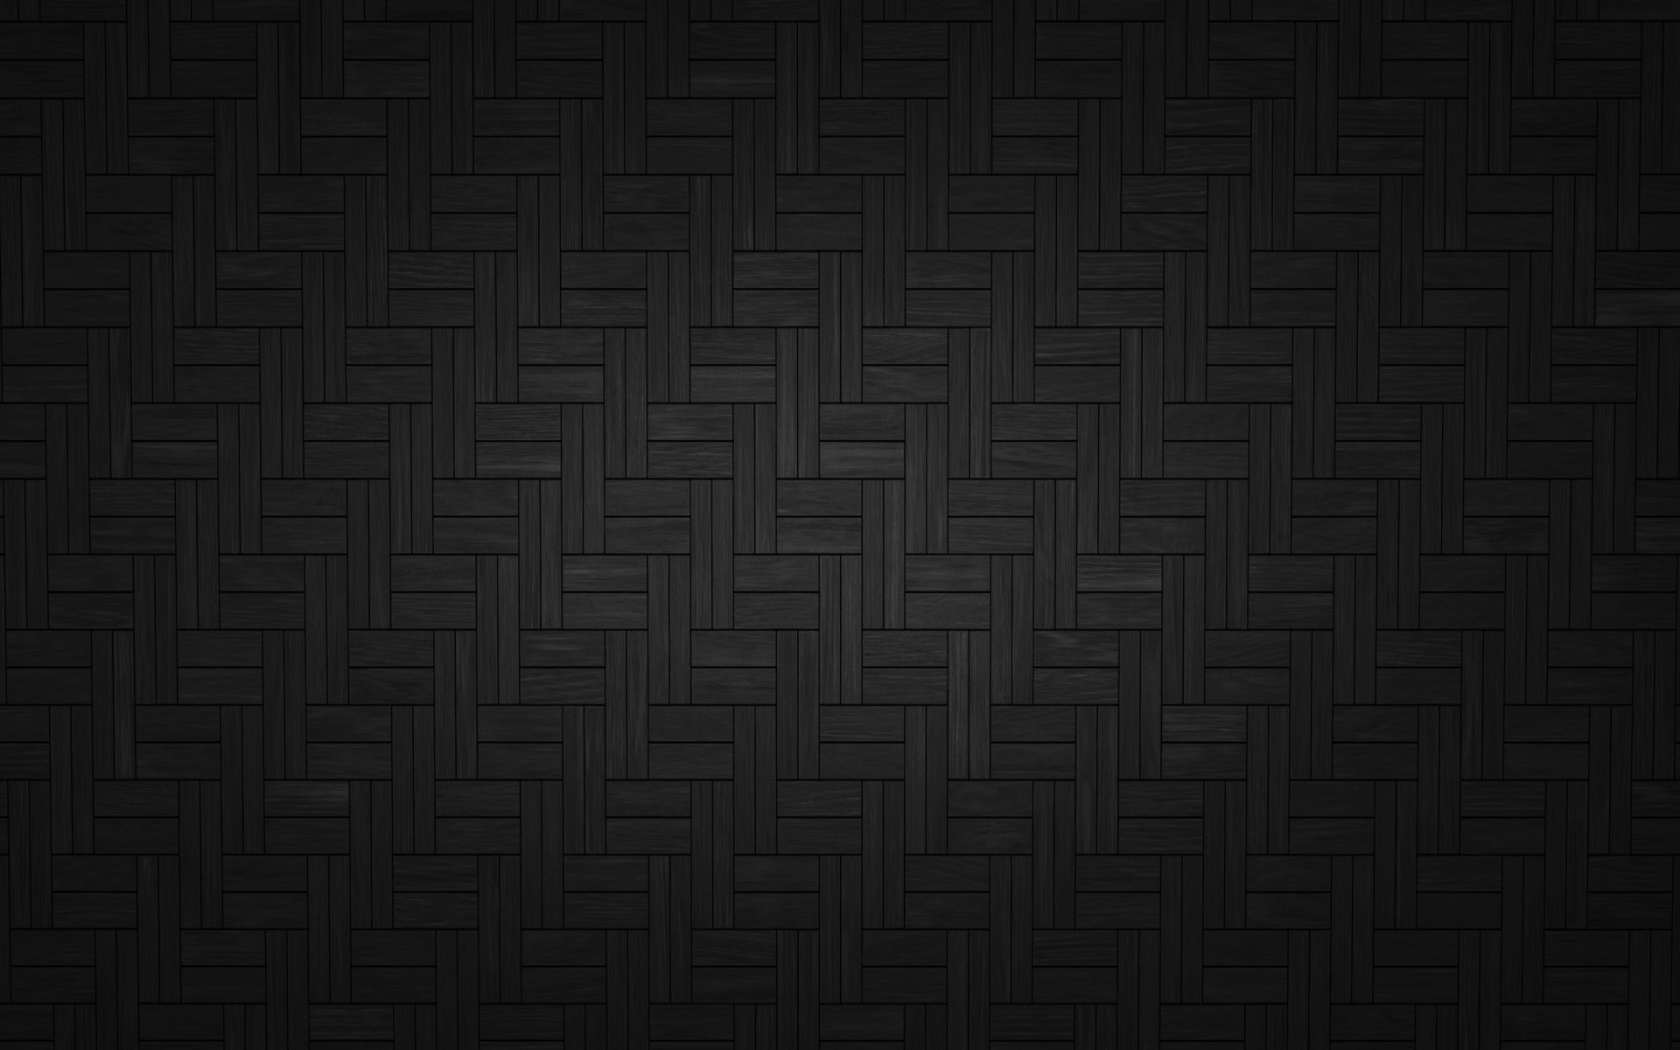 dark_background_line_surface_65896_1680x1050